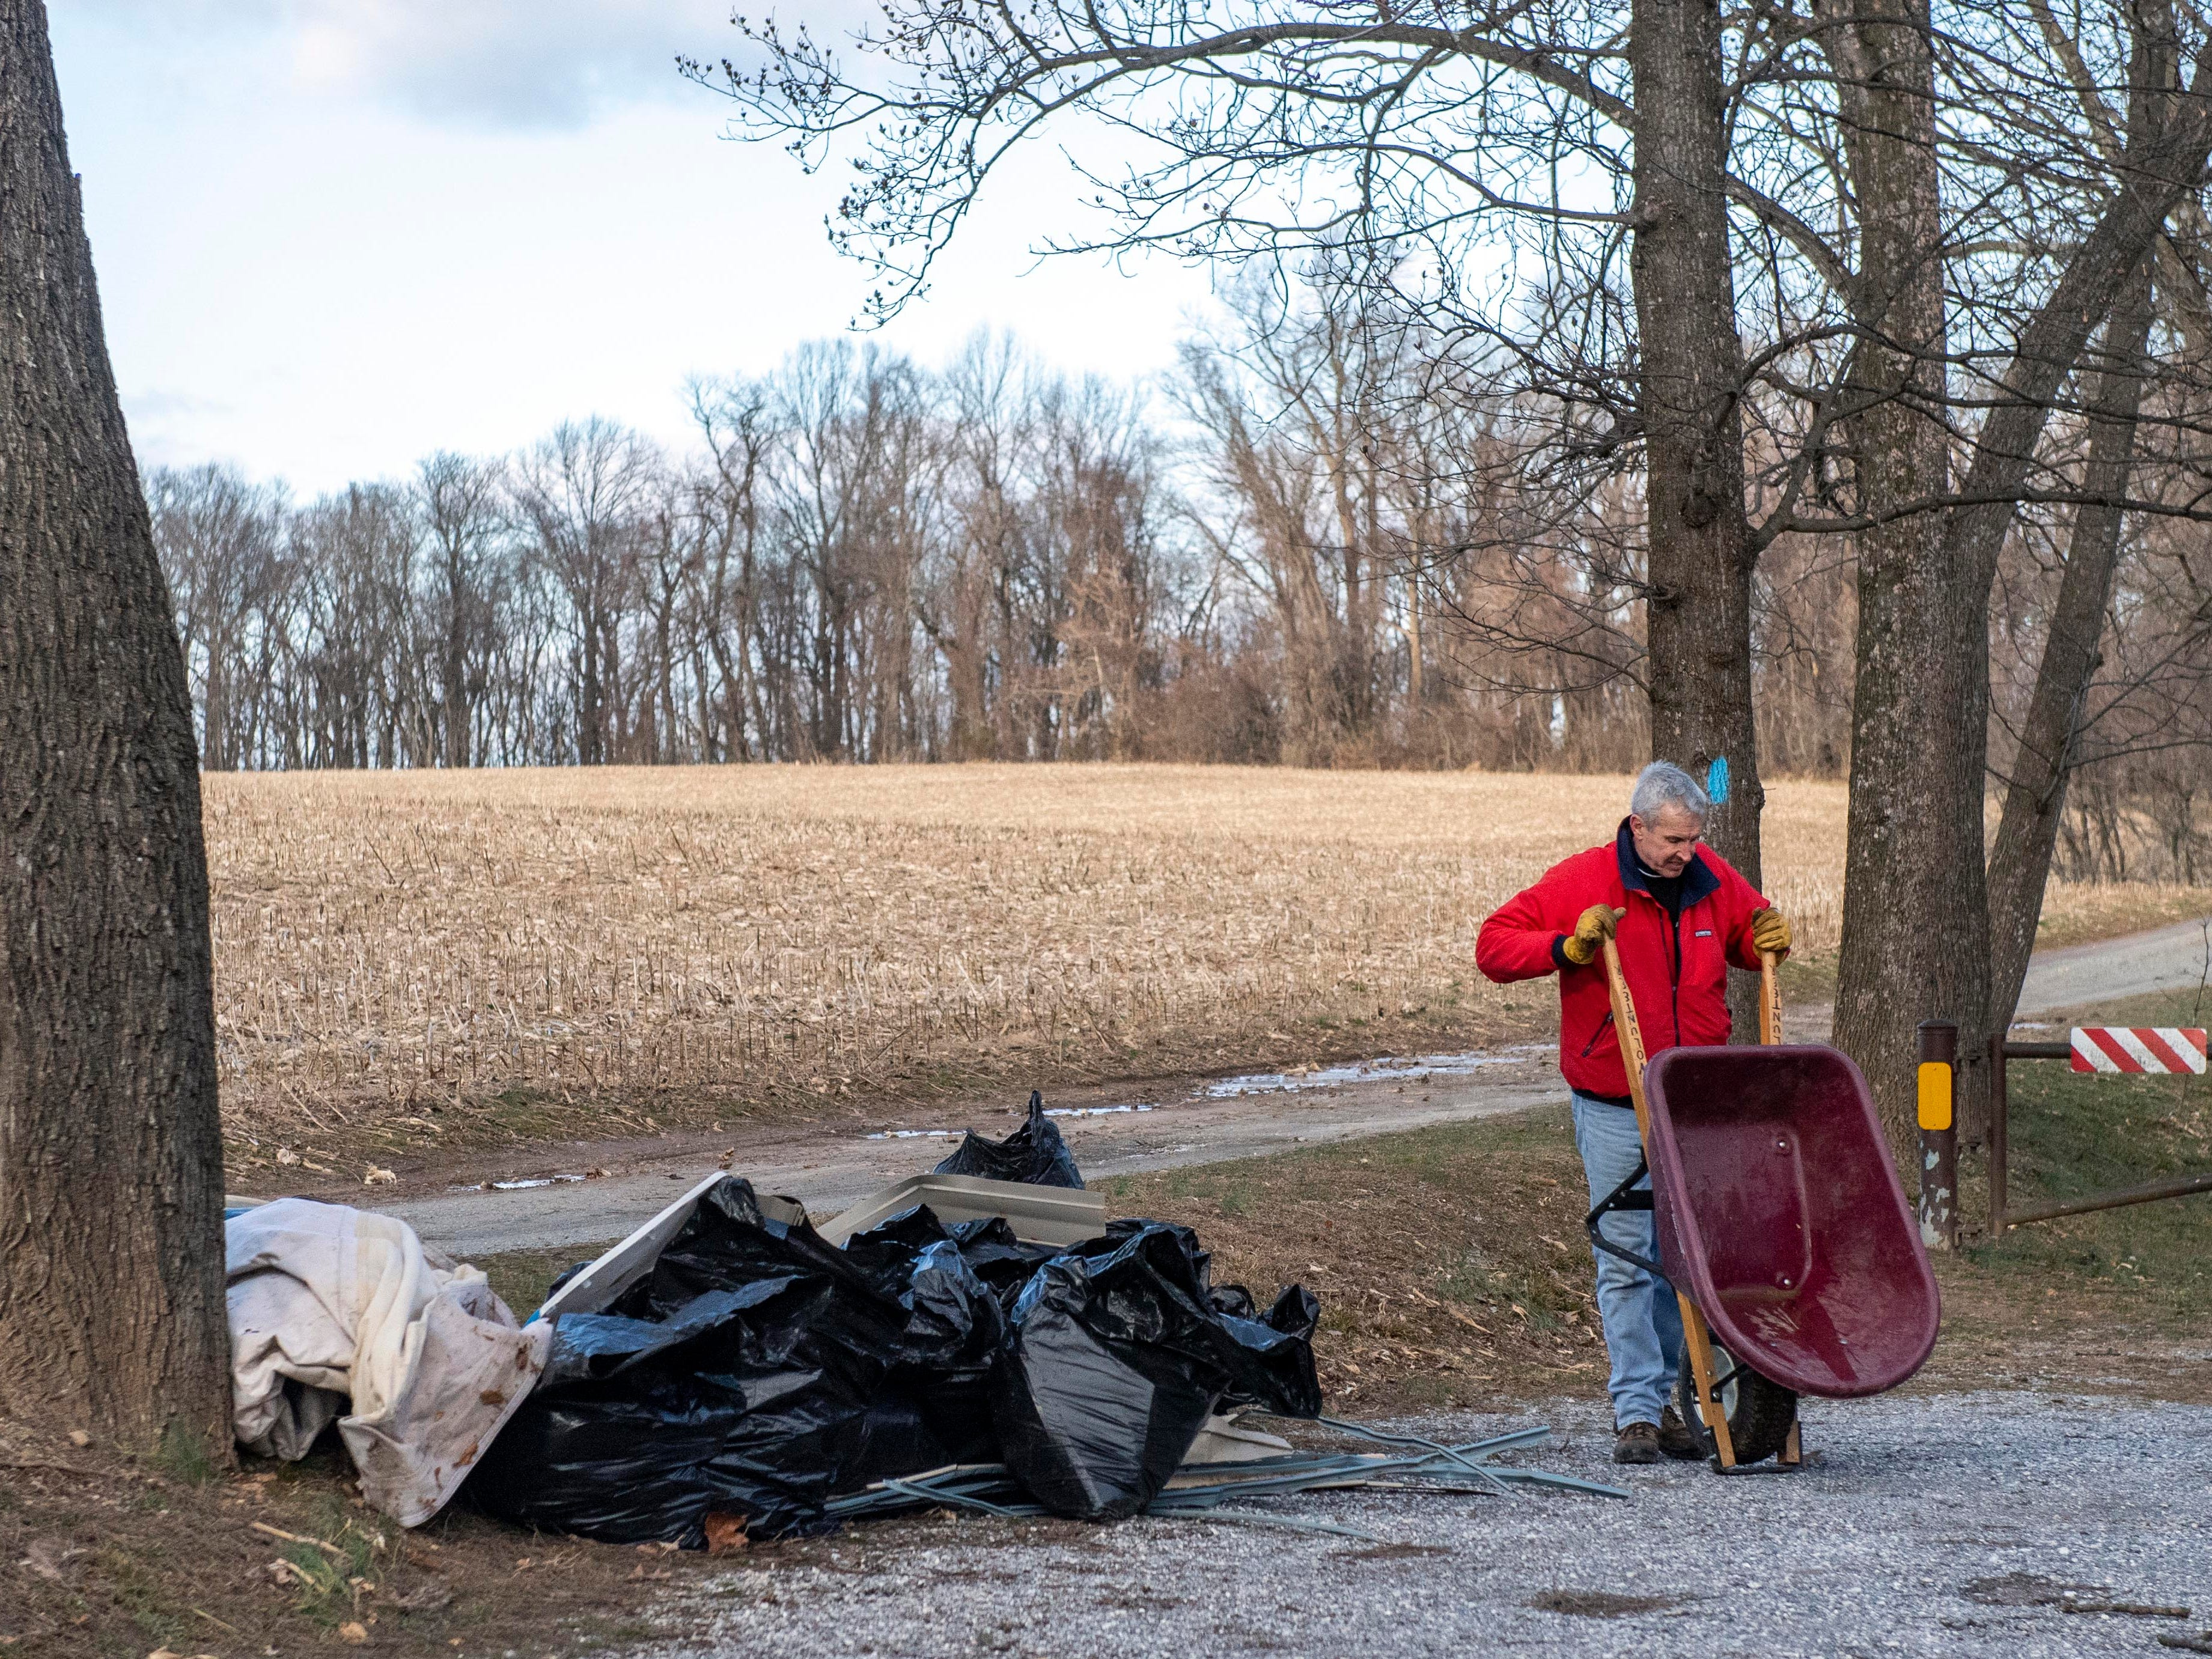 Steve Smith, a volunteer who has been removing trash and debris since the 8:30 a.m., empties his wheelbarrow in the parking lot of Urey Overlook, Thursday, Jan. 10, 2019. Flooding that ravaged many parts of York County in Aug. 2018 swept debris into Otter Creek, in Airville.